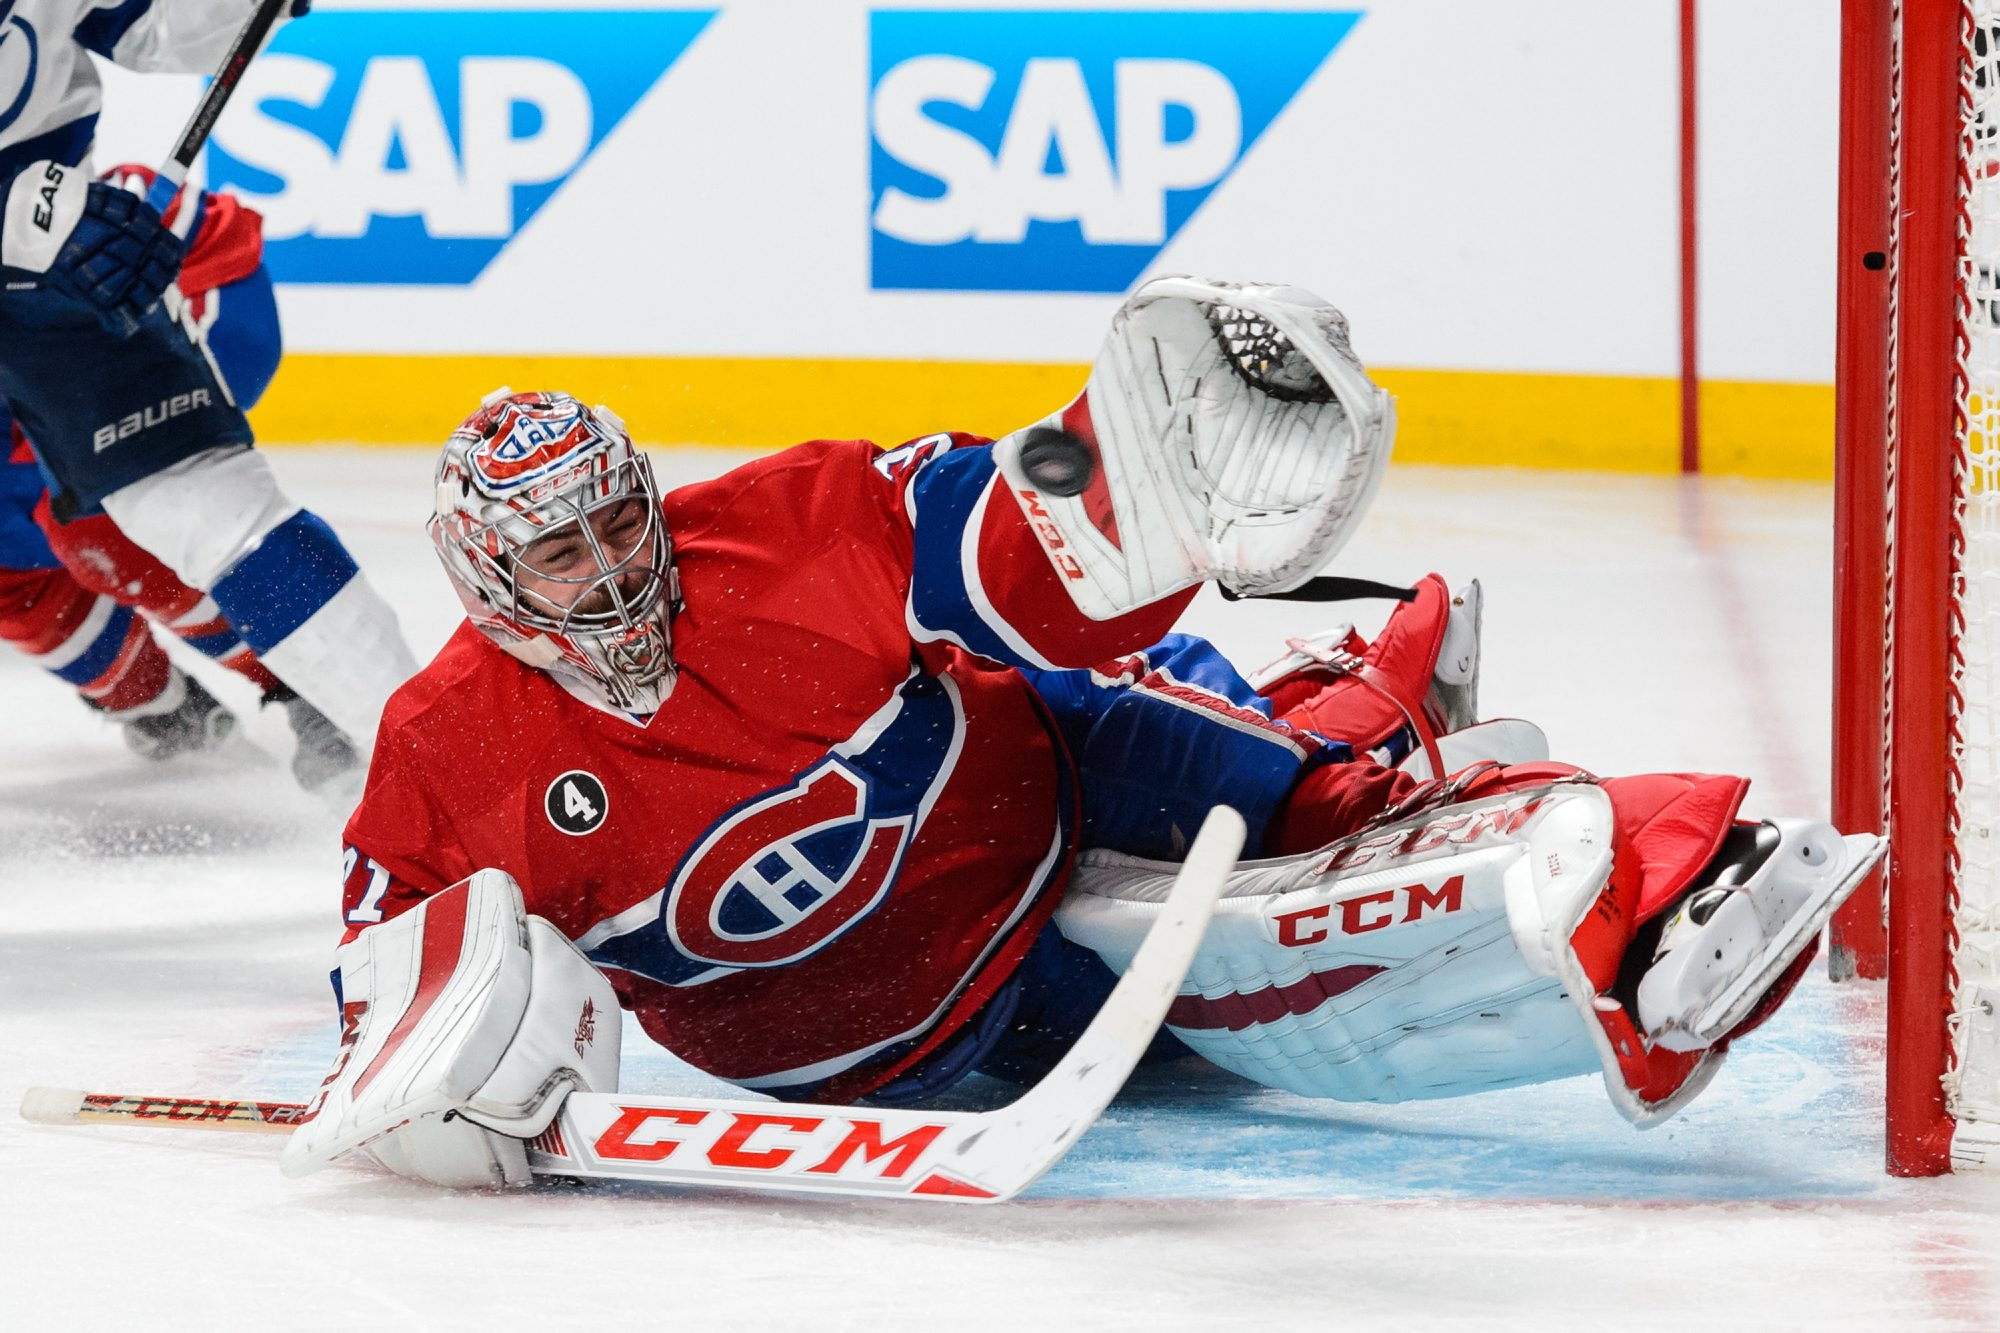 The outstanding play of goaltenders like Montreal's Carey Price has been one of the reasons goal scoring in the postseason is back on the decline.